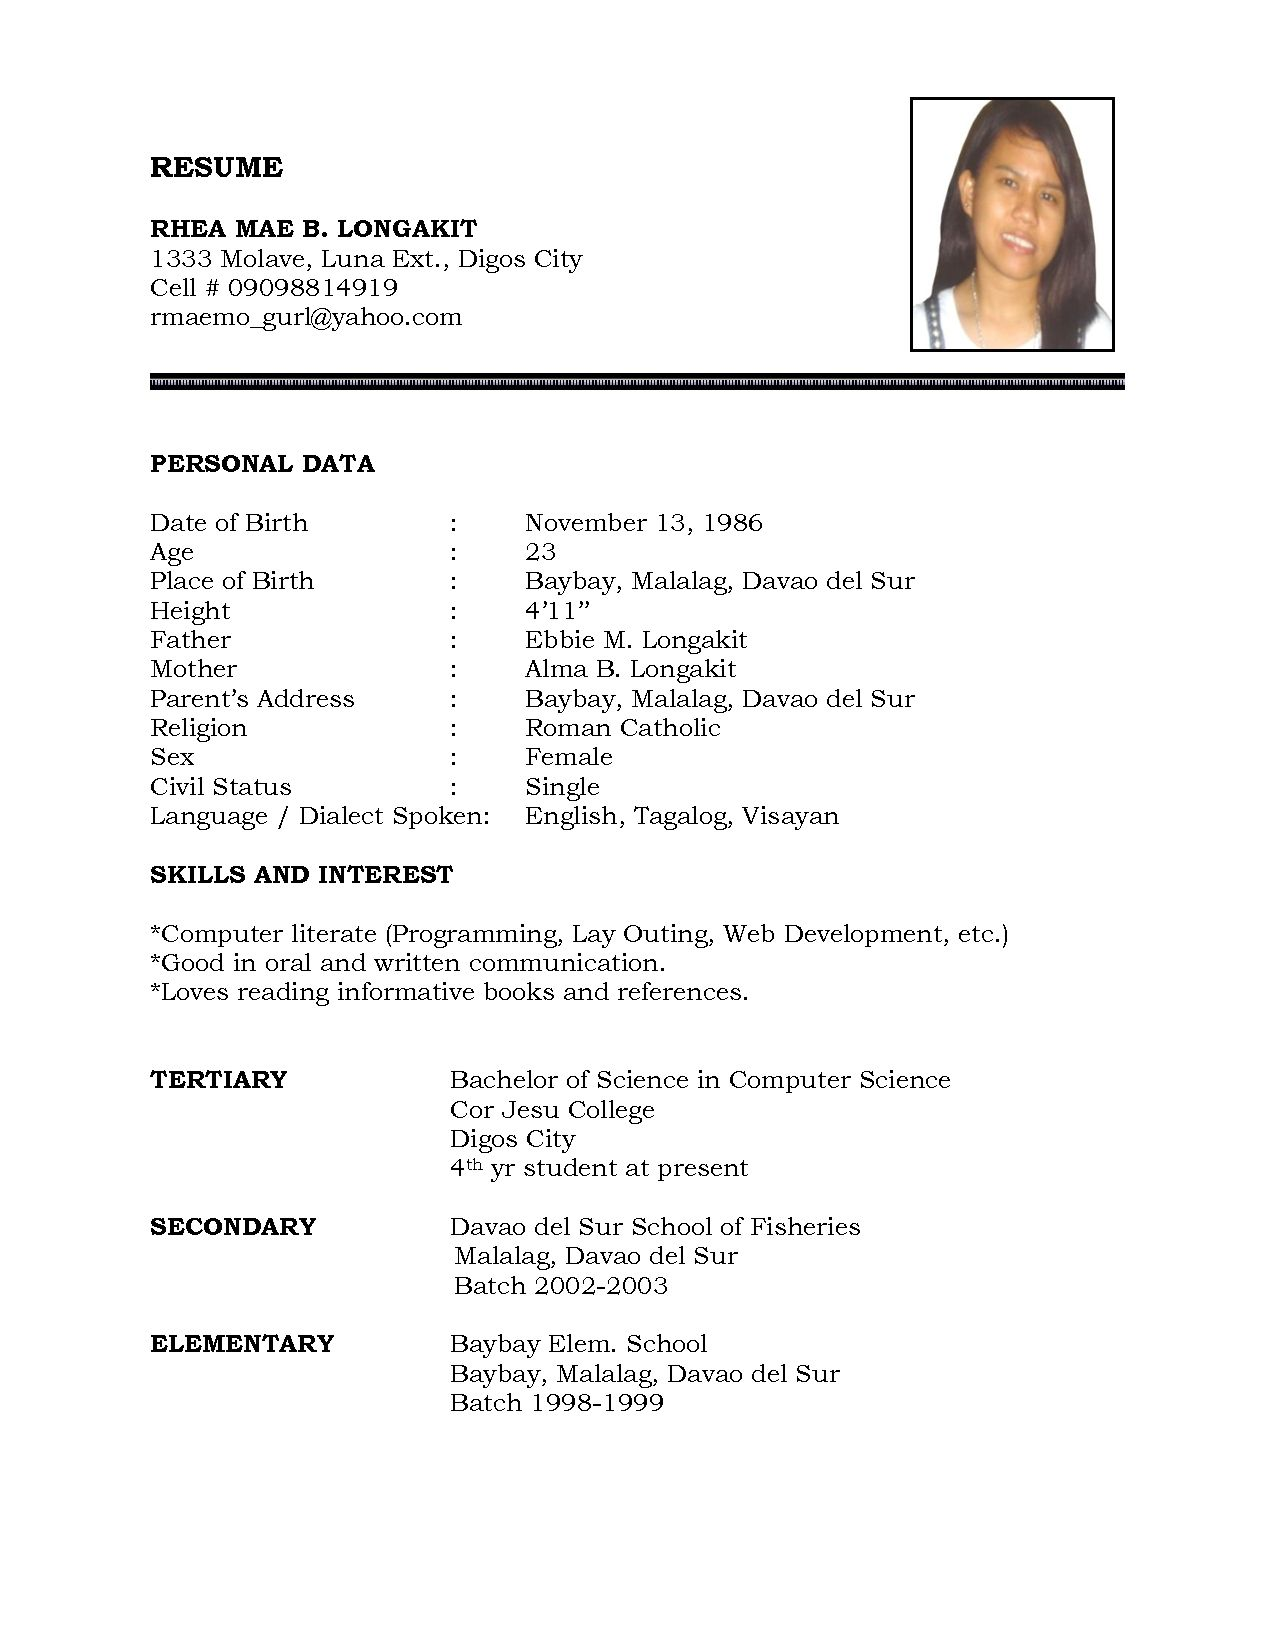 resume sample simple de9e2a60f the simple format of resume for job - Simple Professional Resume